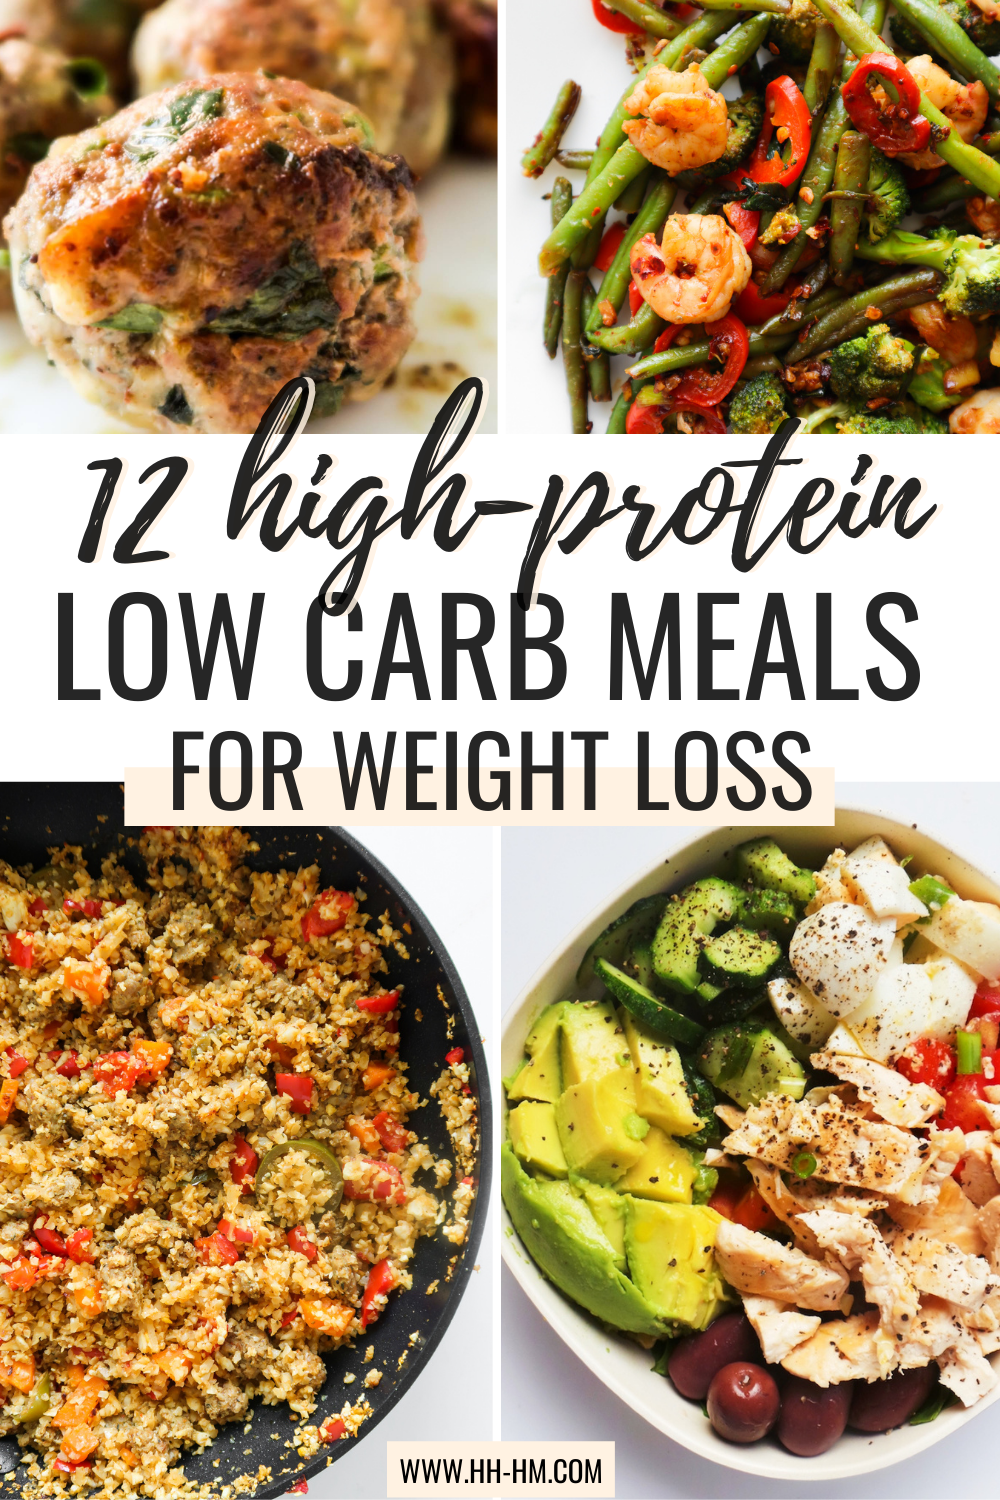 If you're looking for some quick and easy low carb high protein meals to help you lose weight and reach your fitness goals, you've just found them. This is a collection of super simple weight loss meals and healthy recipes for dinner, lunch and some for breakfast.